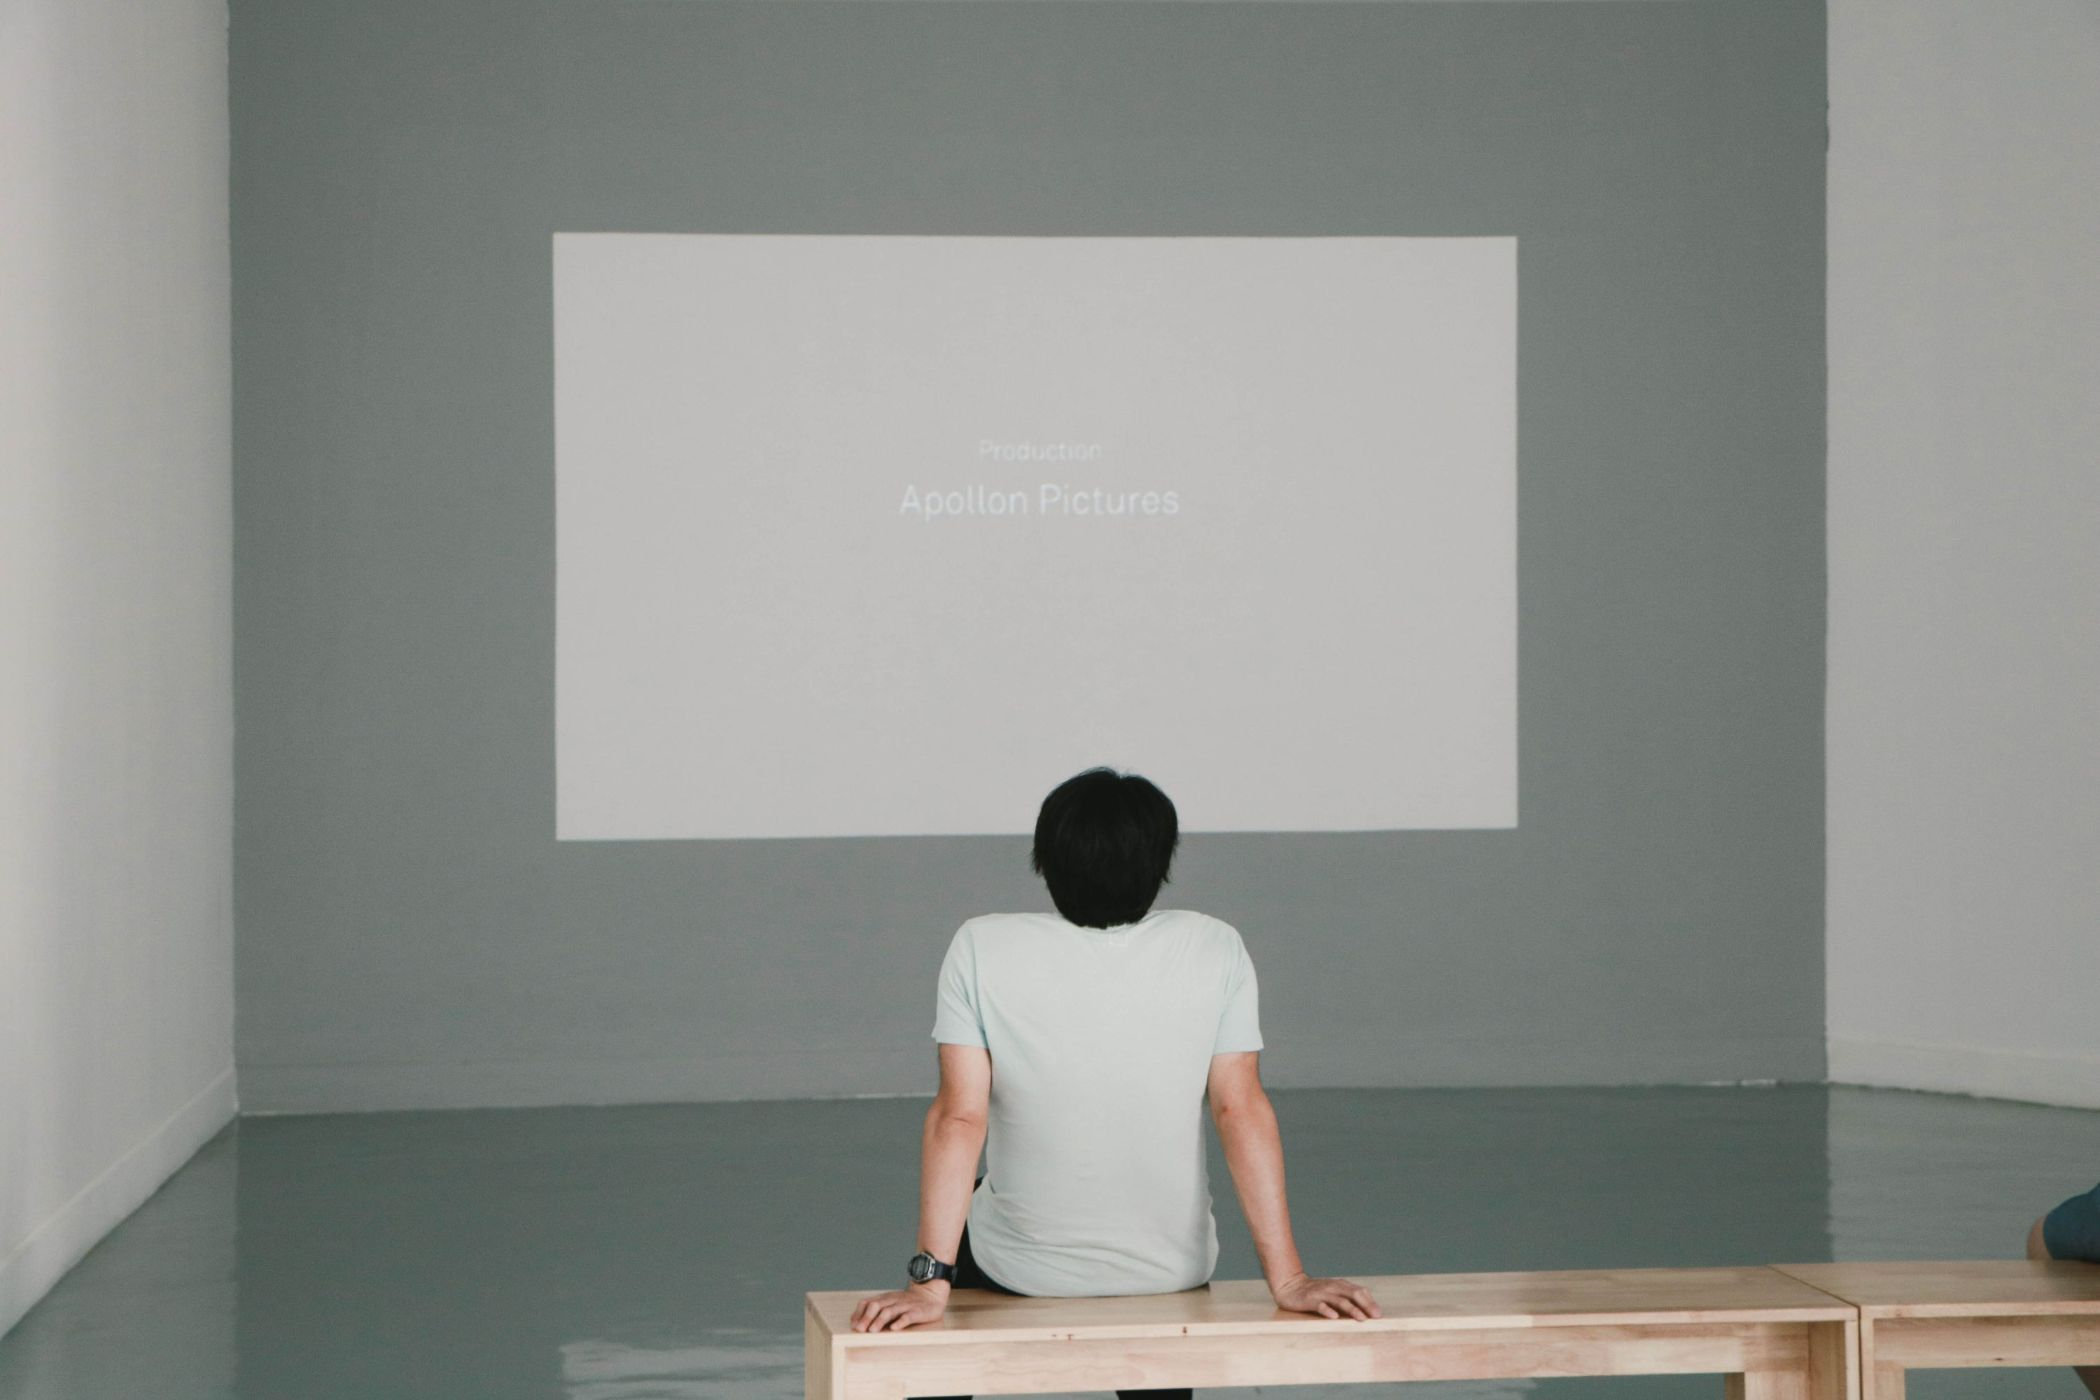 Movies in Greece boy infront of projector